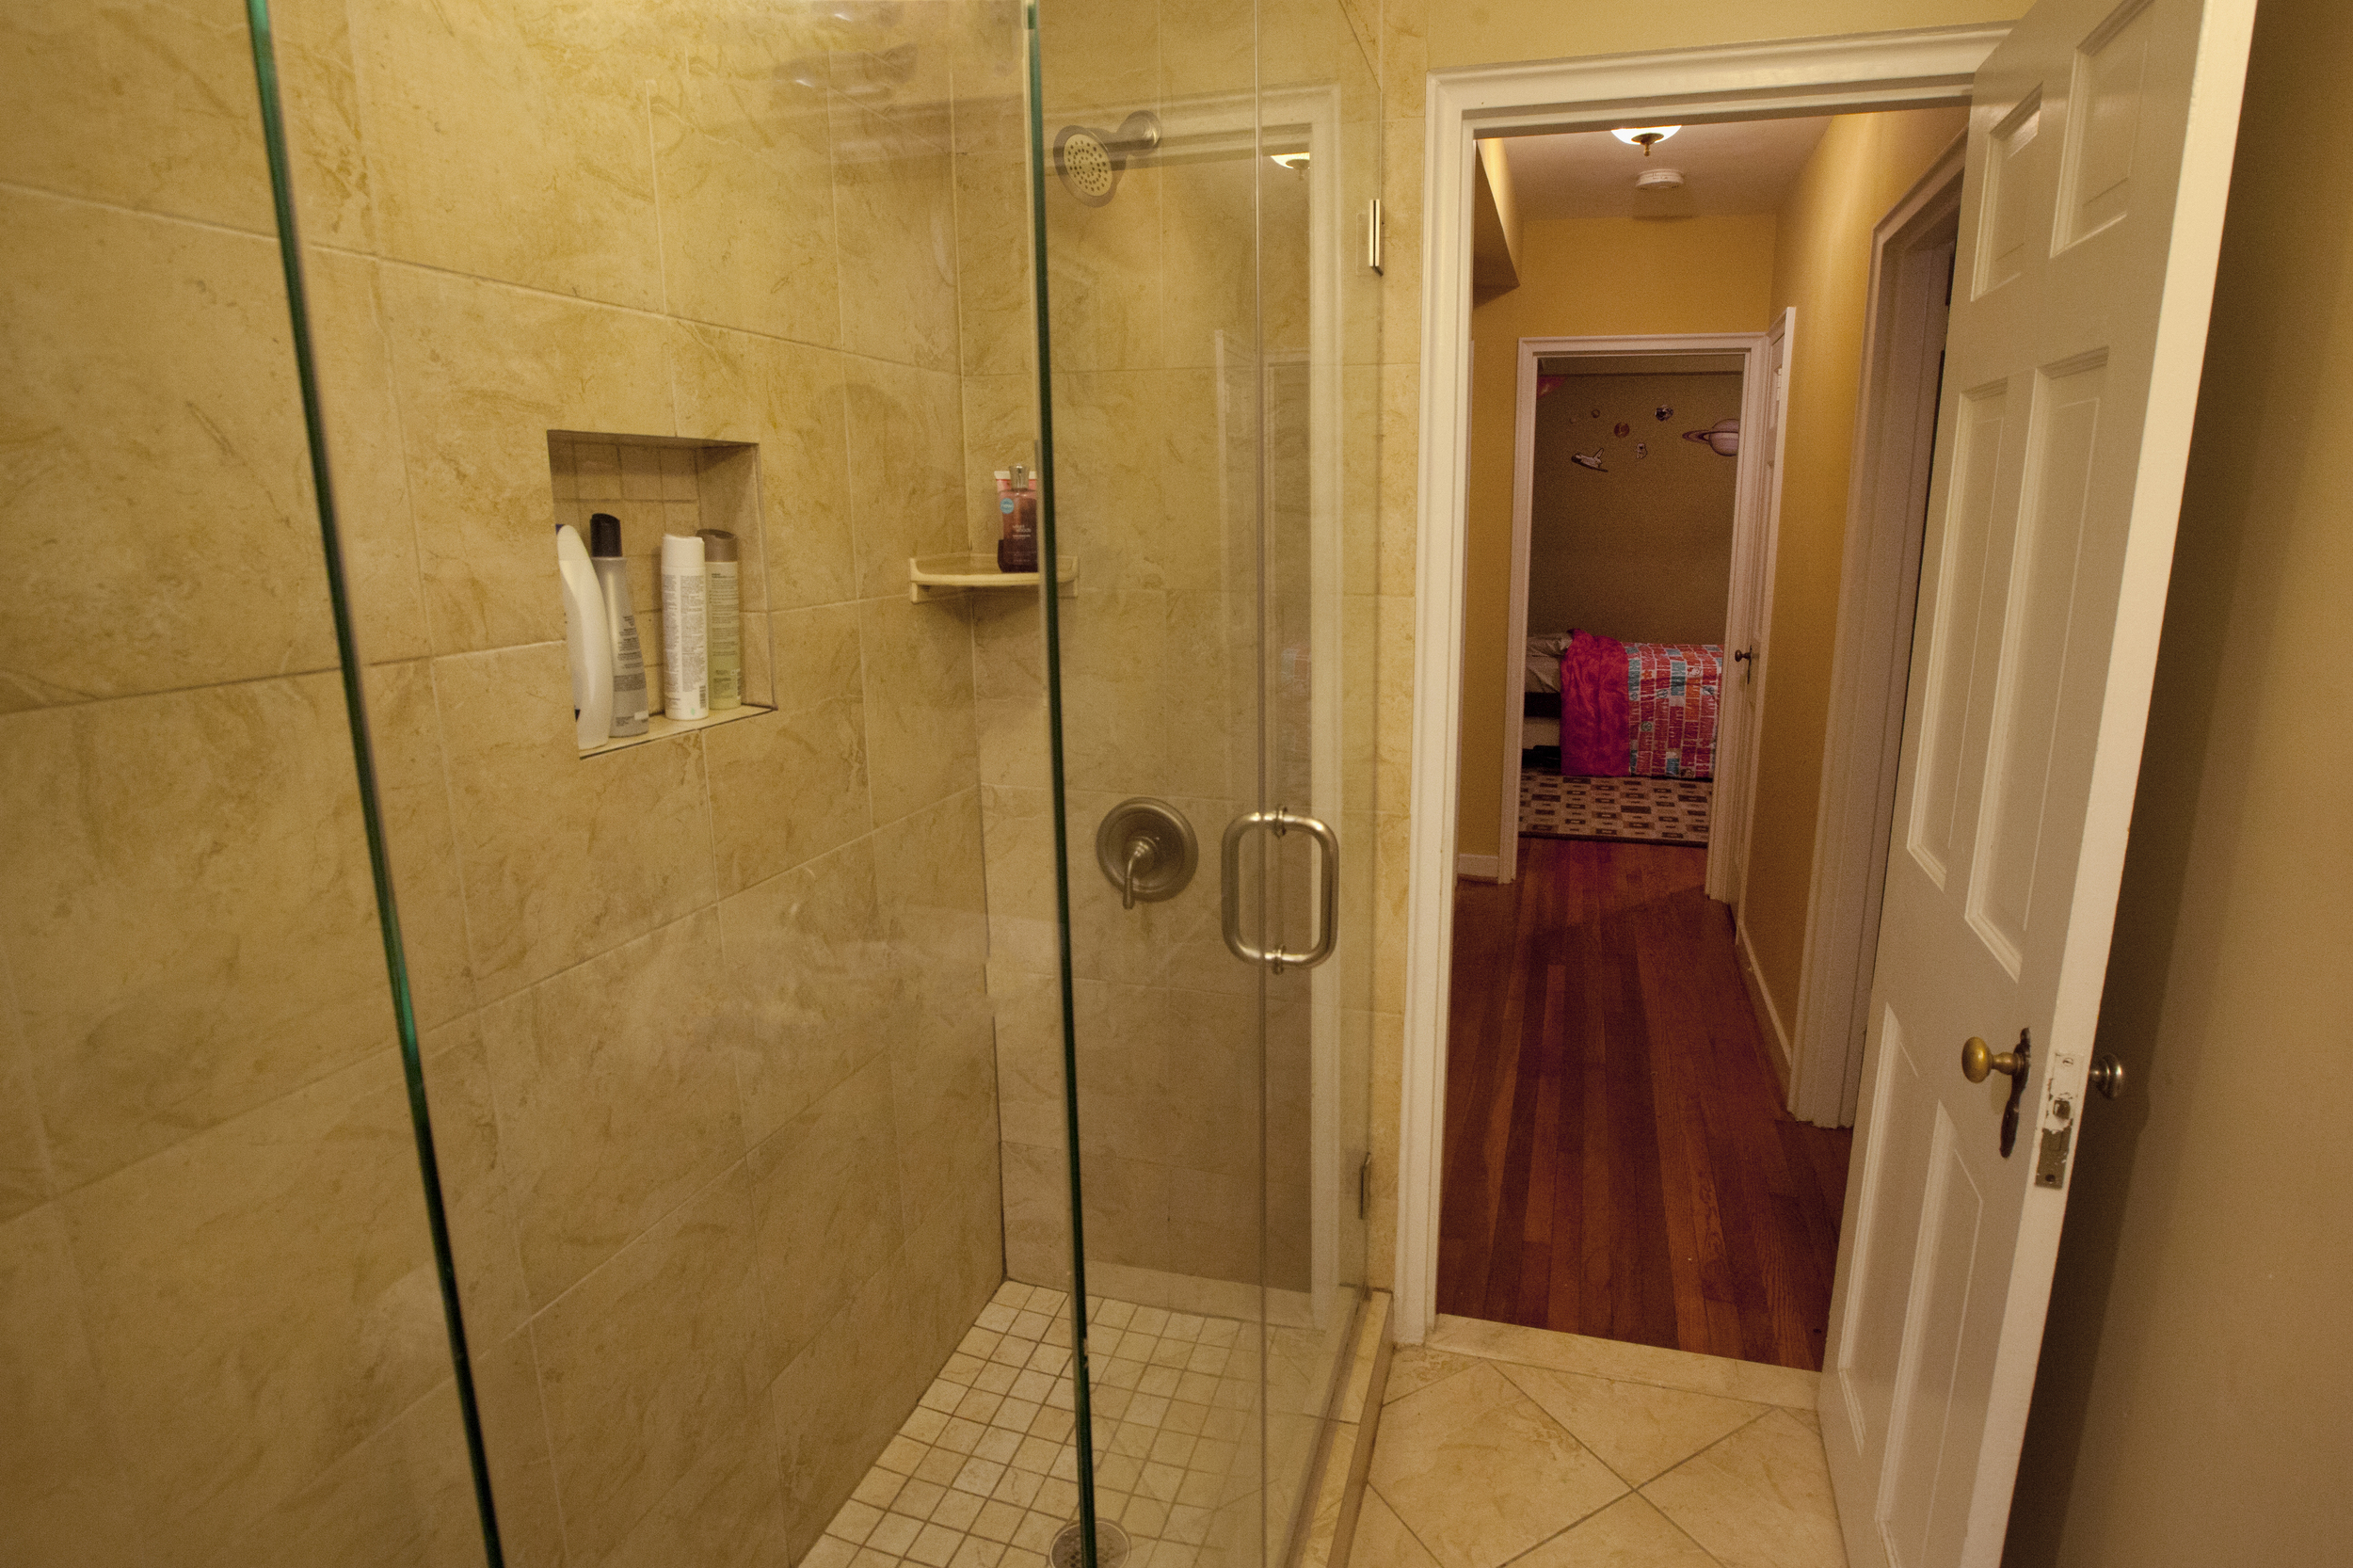 Glass shower makes the most use of the space.